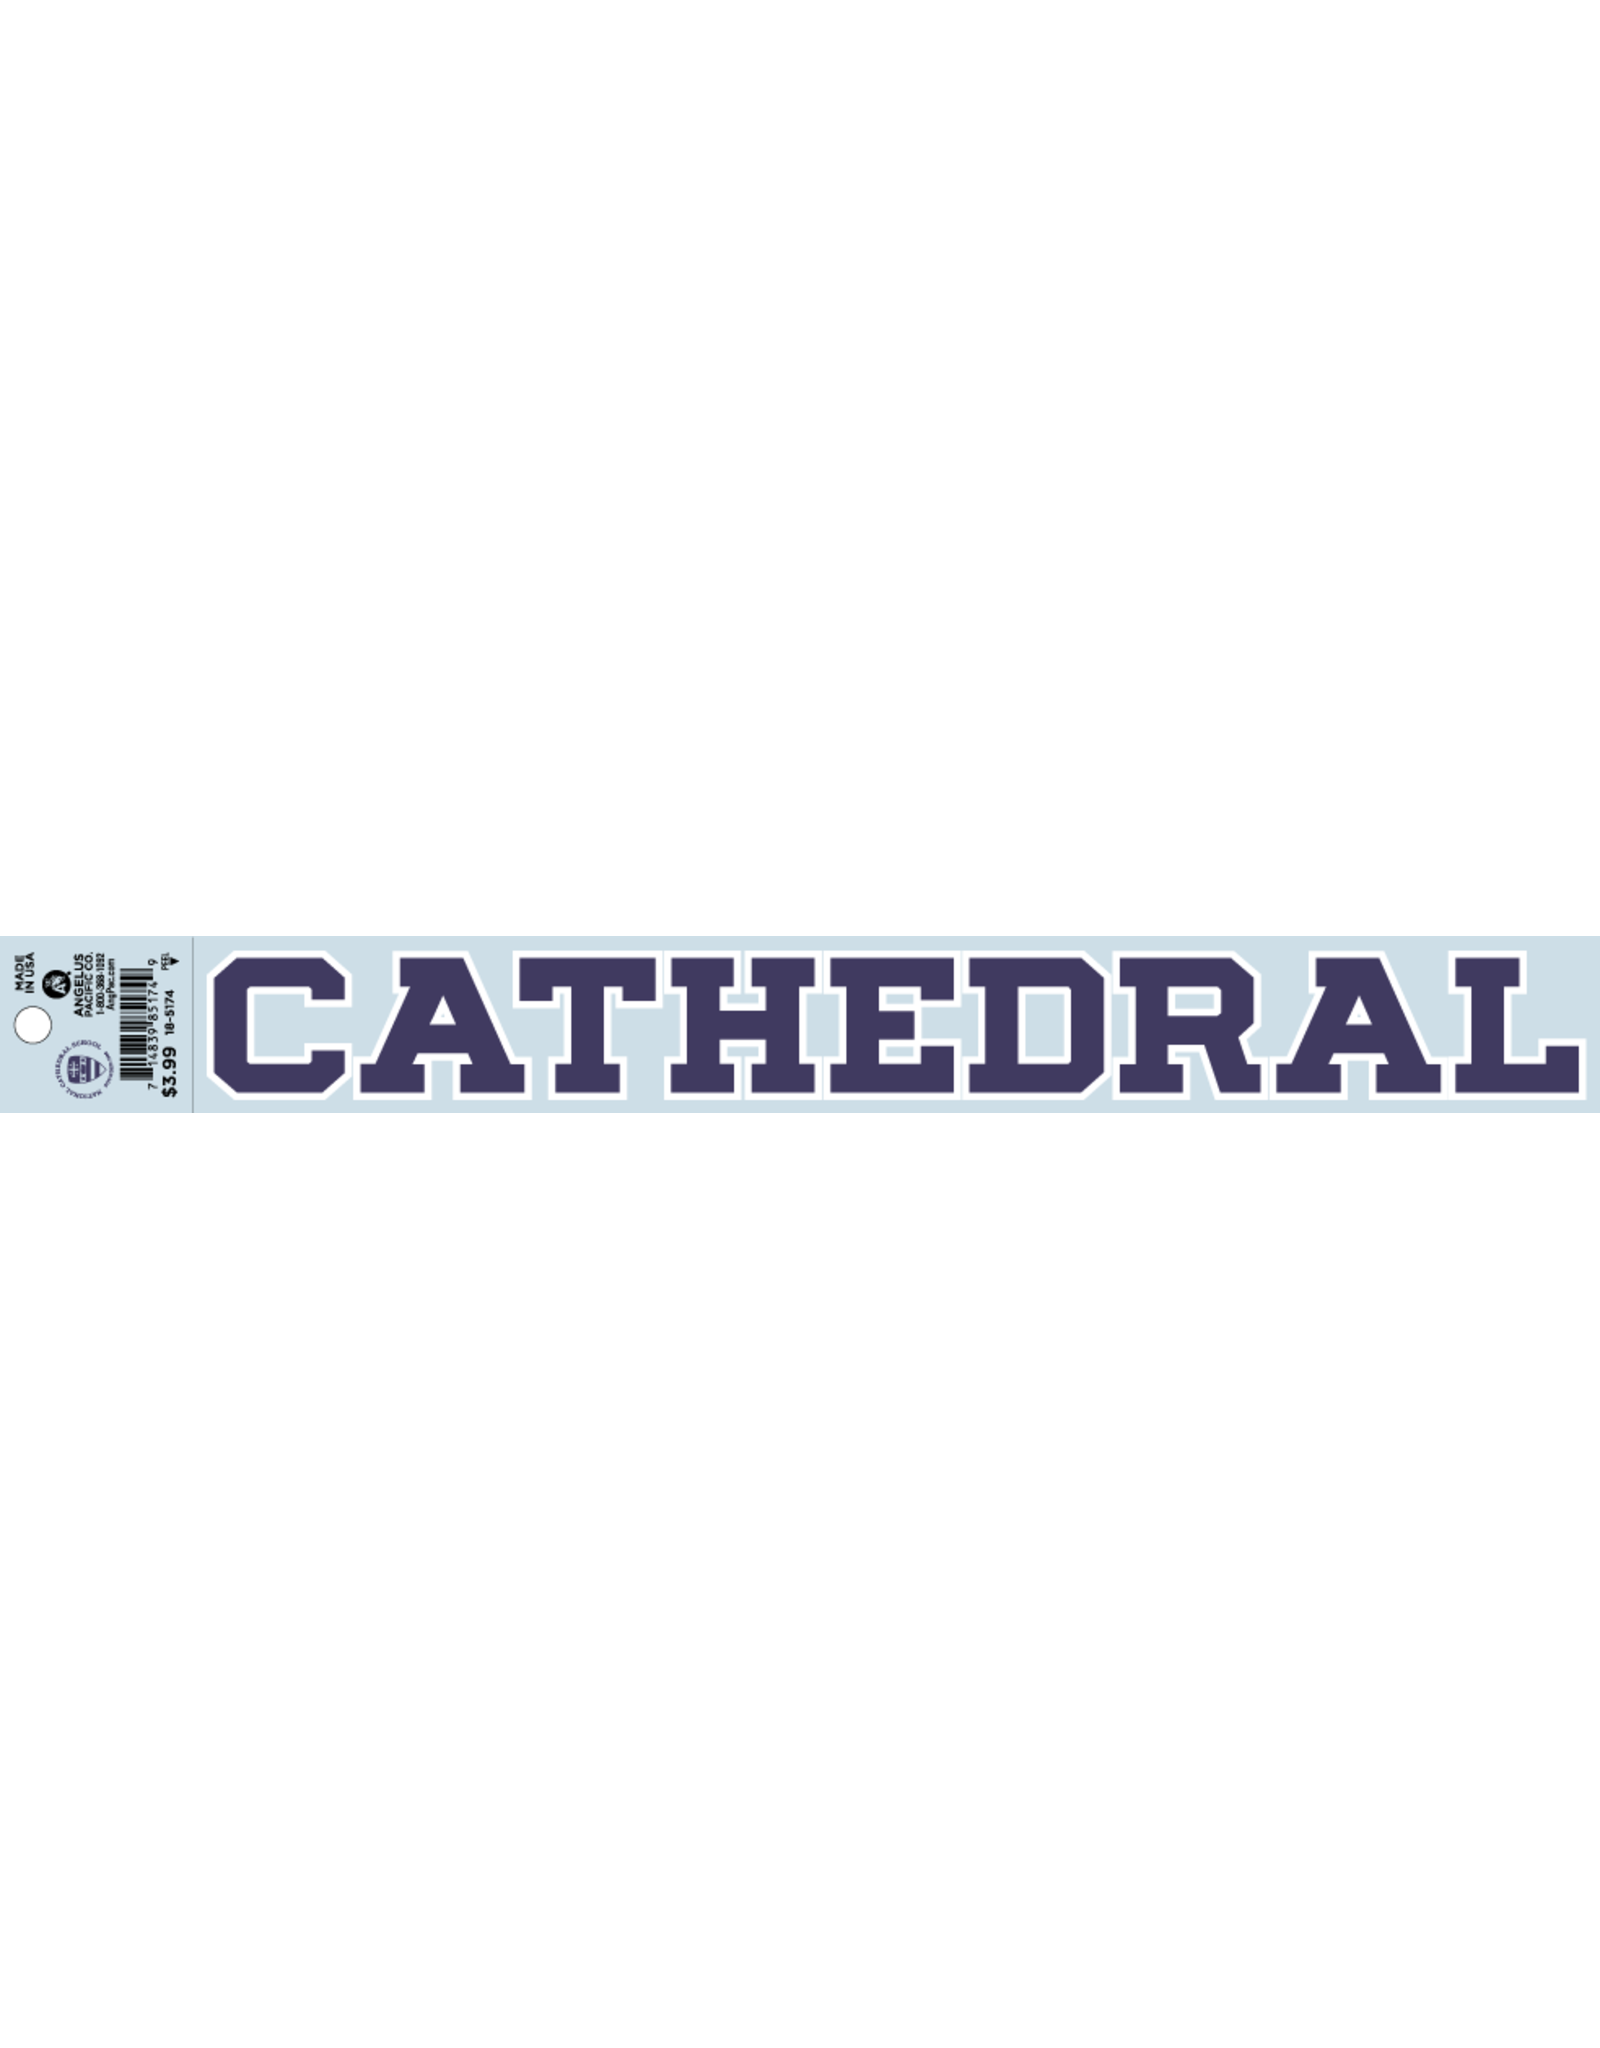 DECAL-CATHEDRAL PUR/WHT